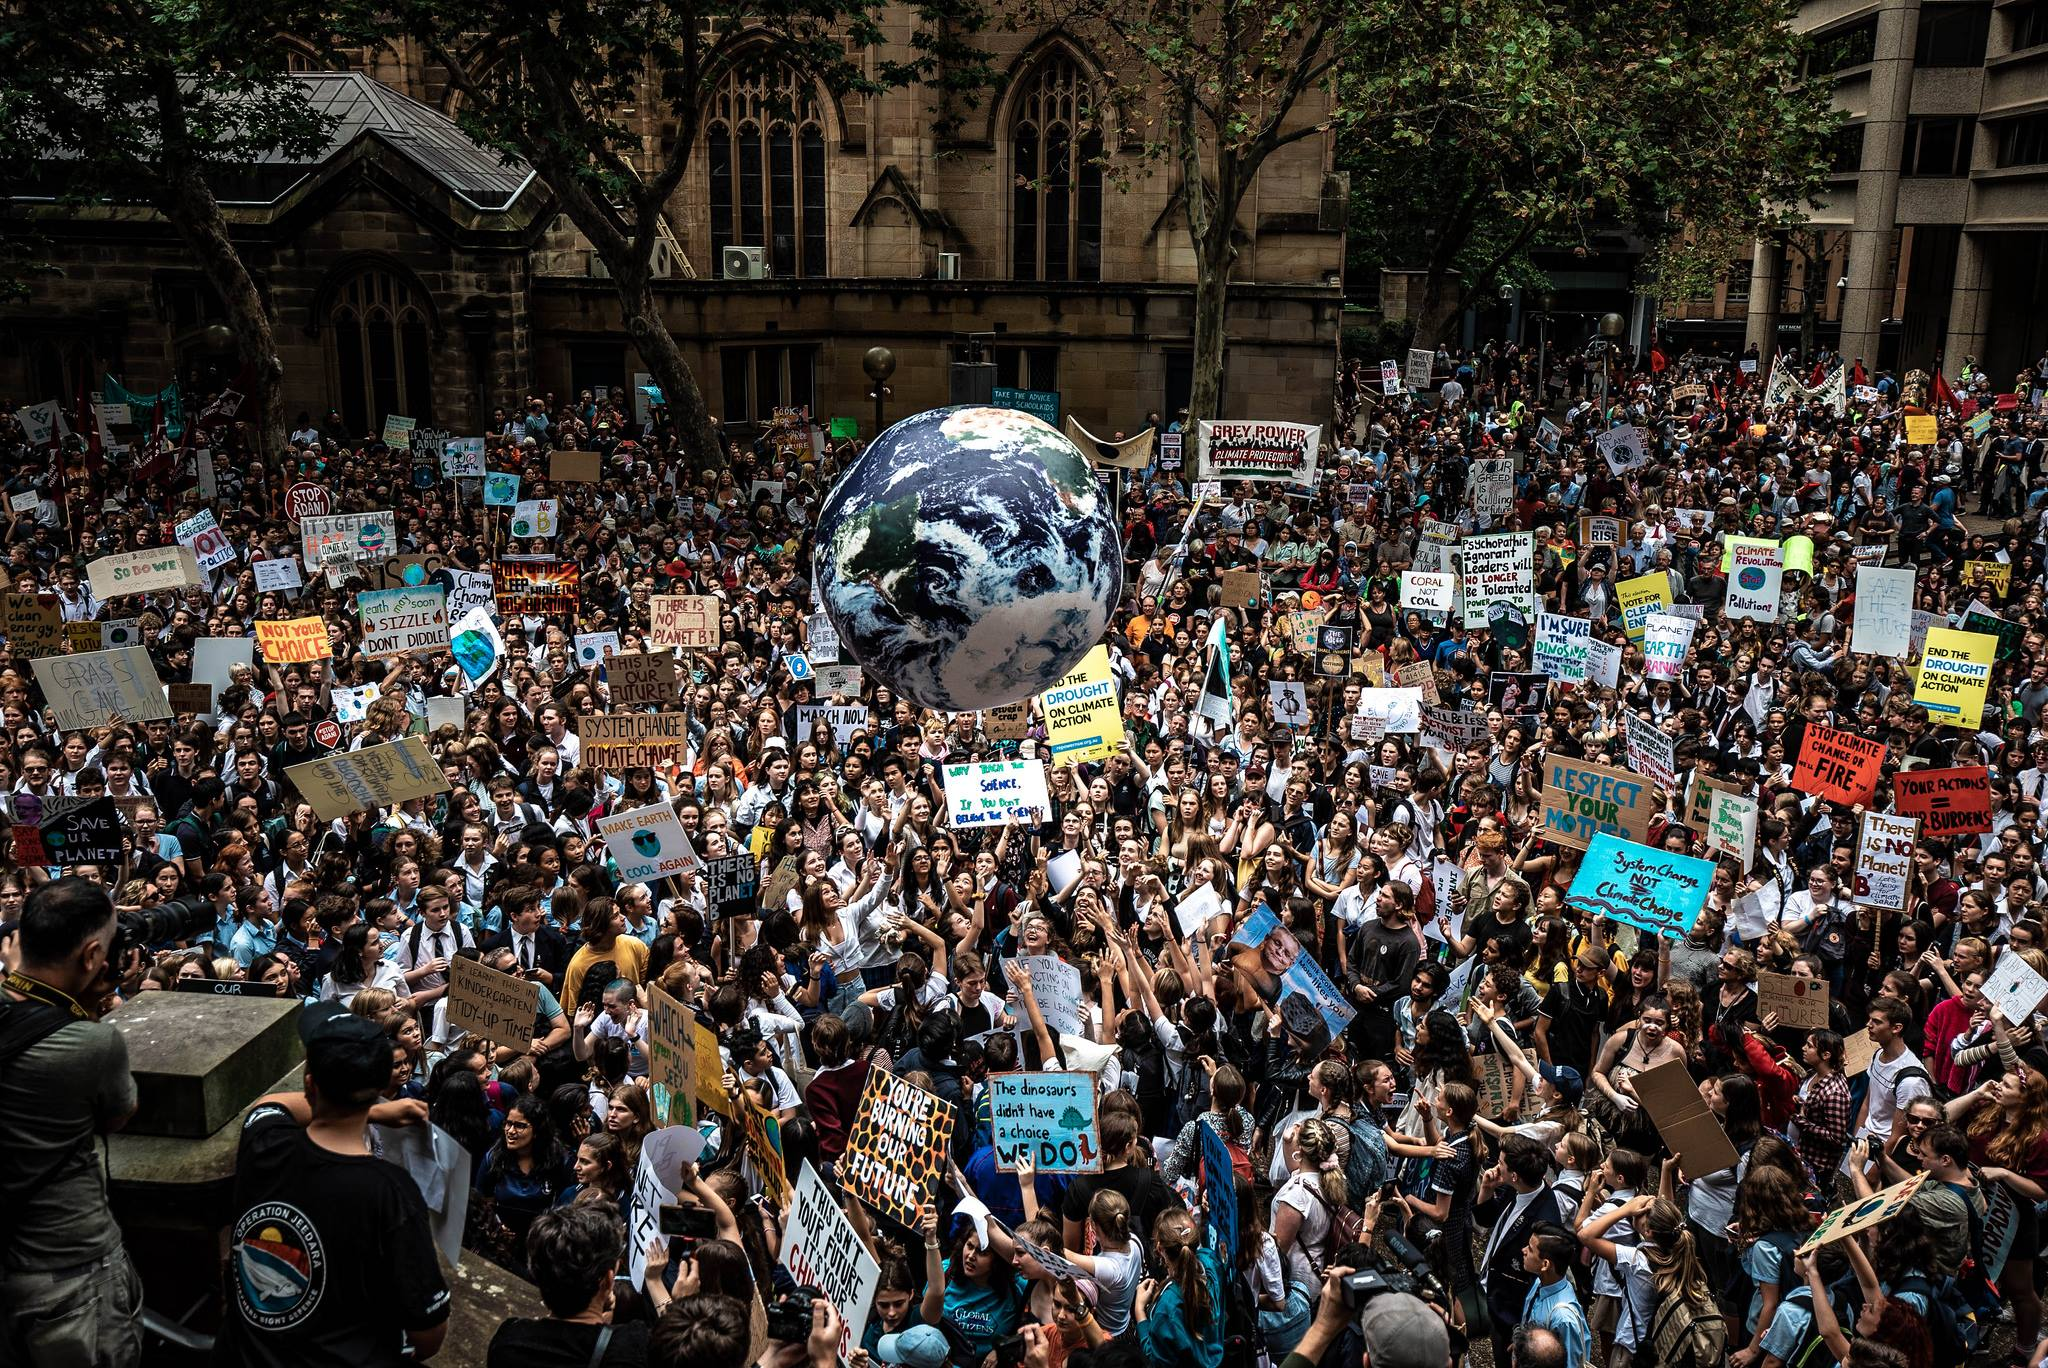 Majority of Australians Support School Strikers and Real Climate Action, Poll Finds